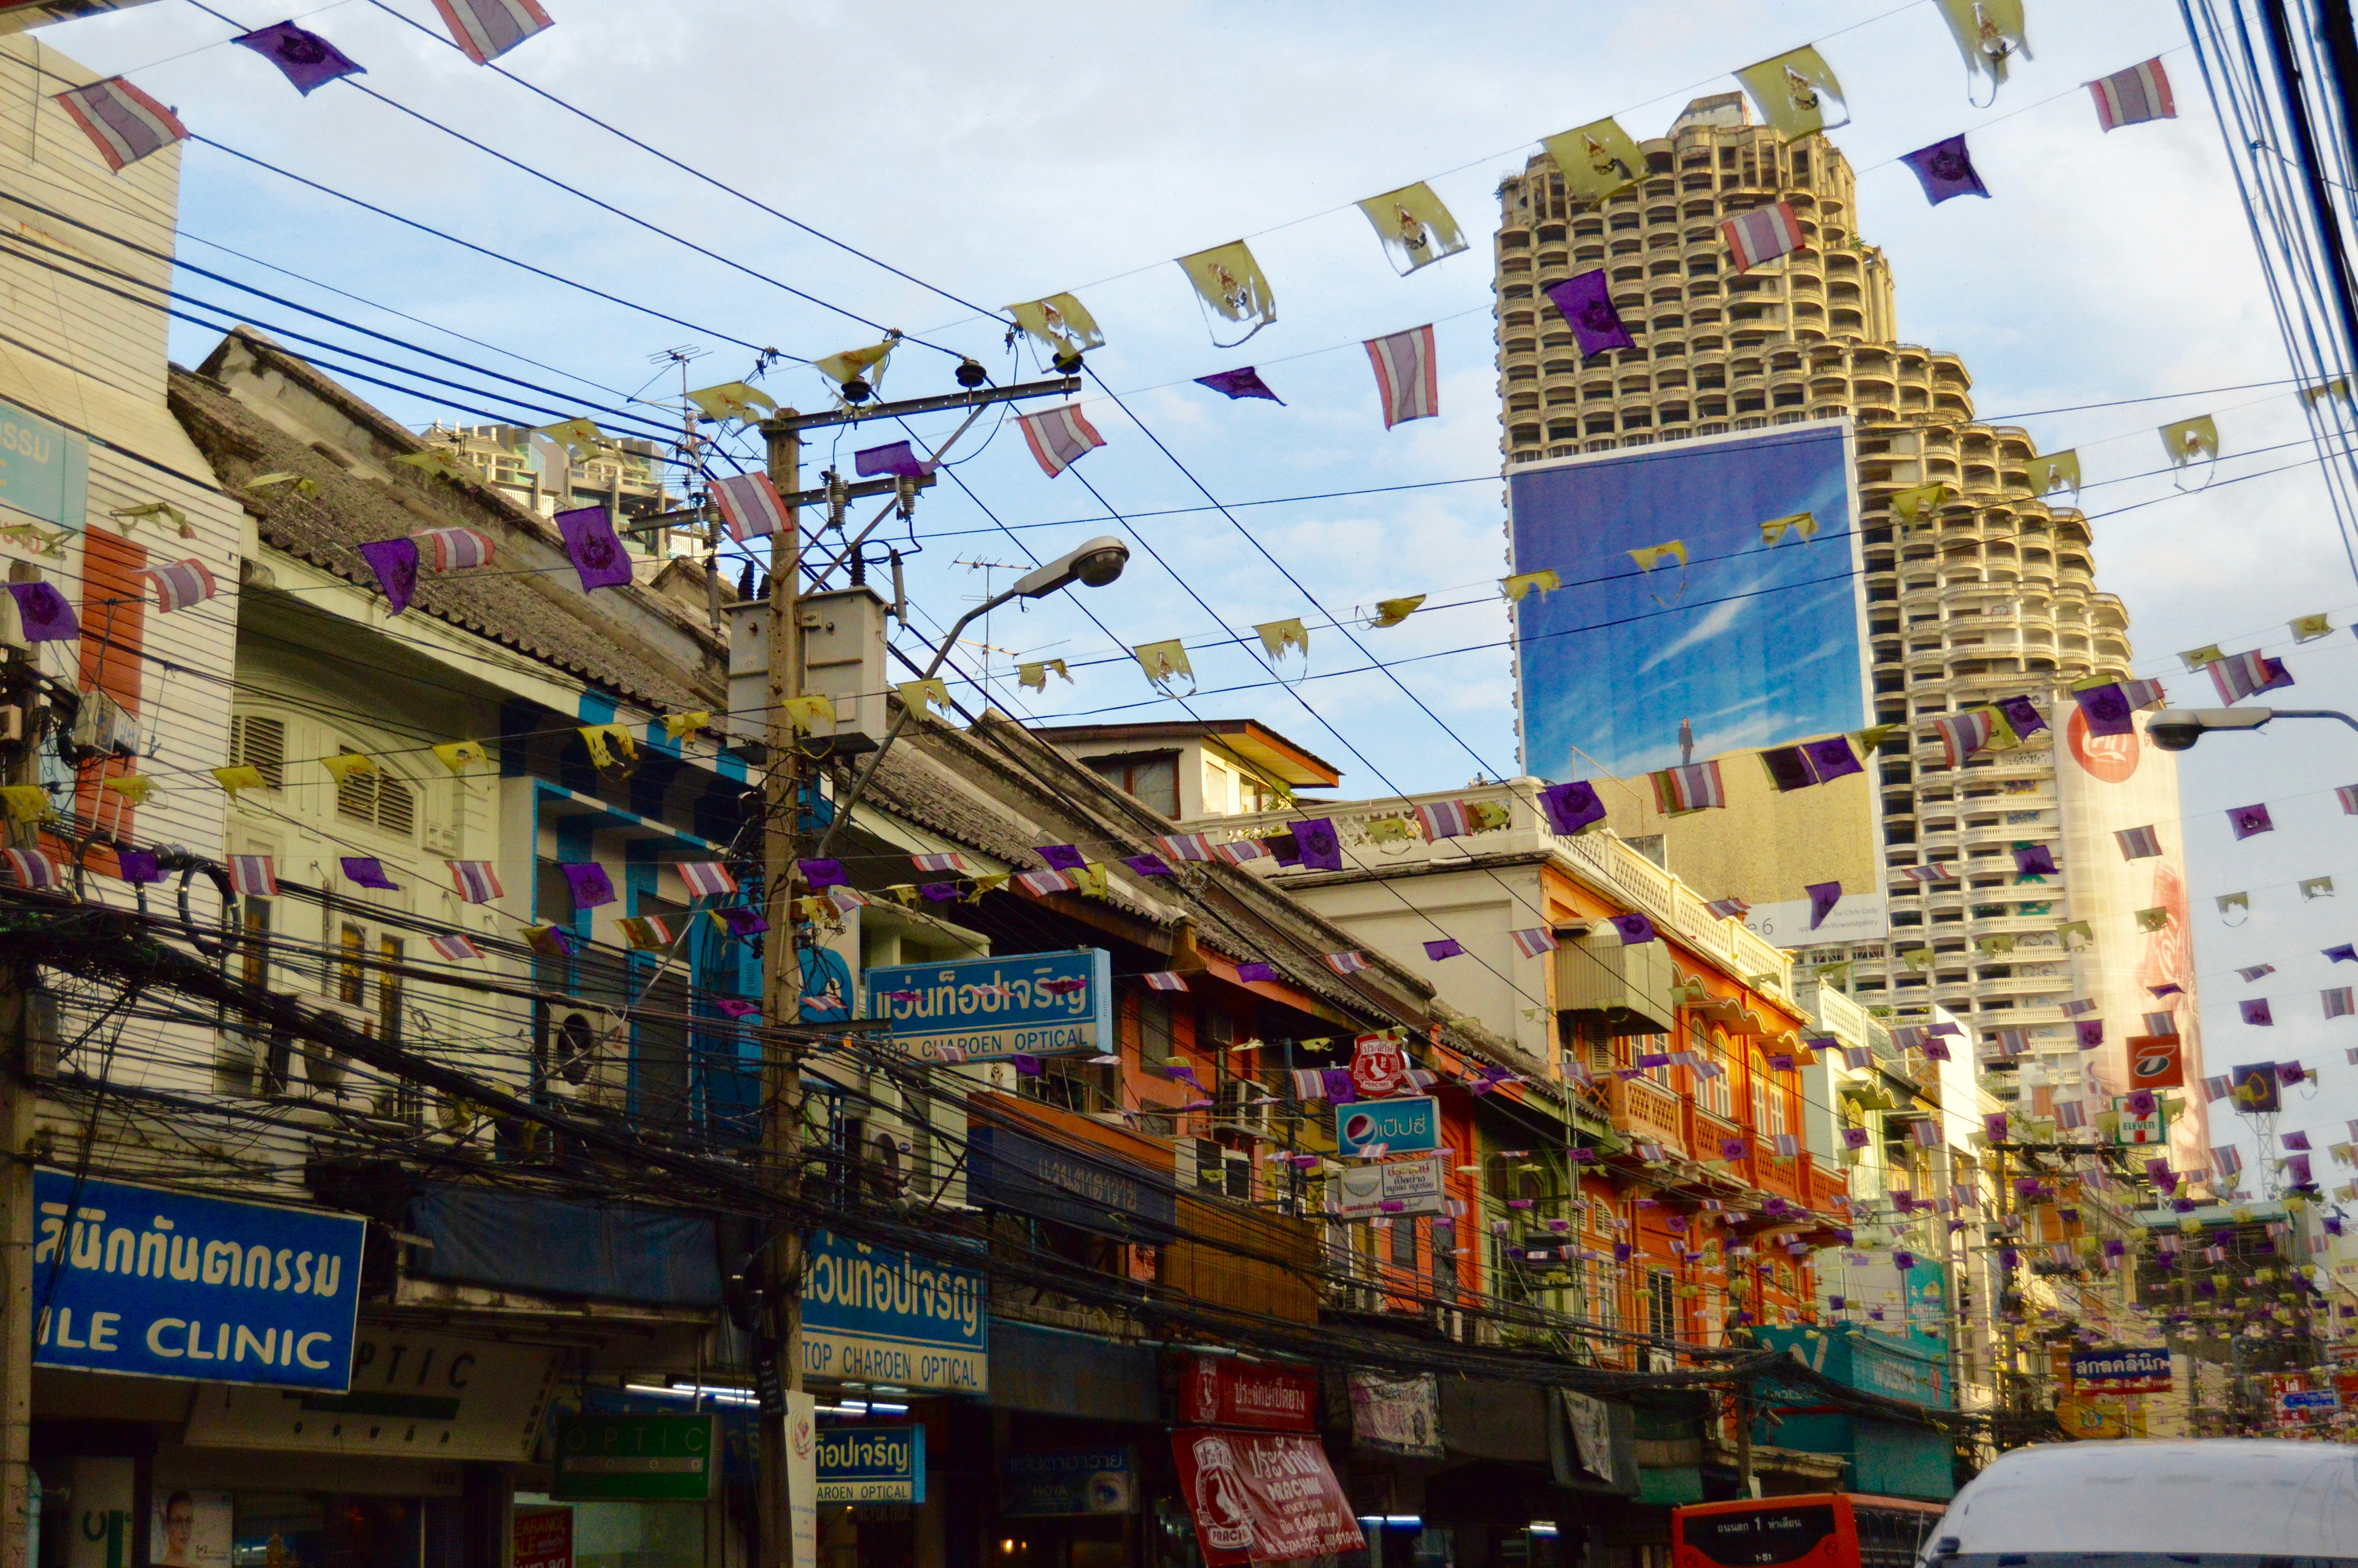 Shops and skyscrapers on a street in Bangkok.